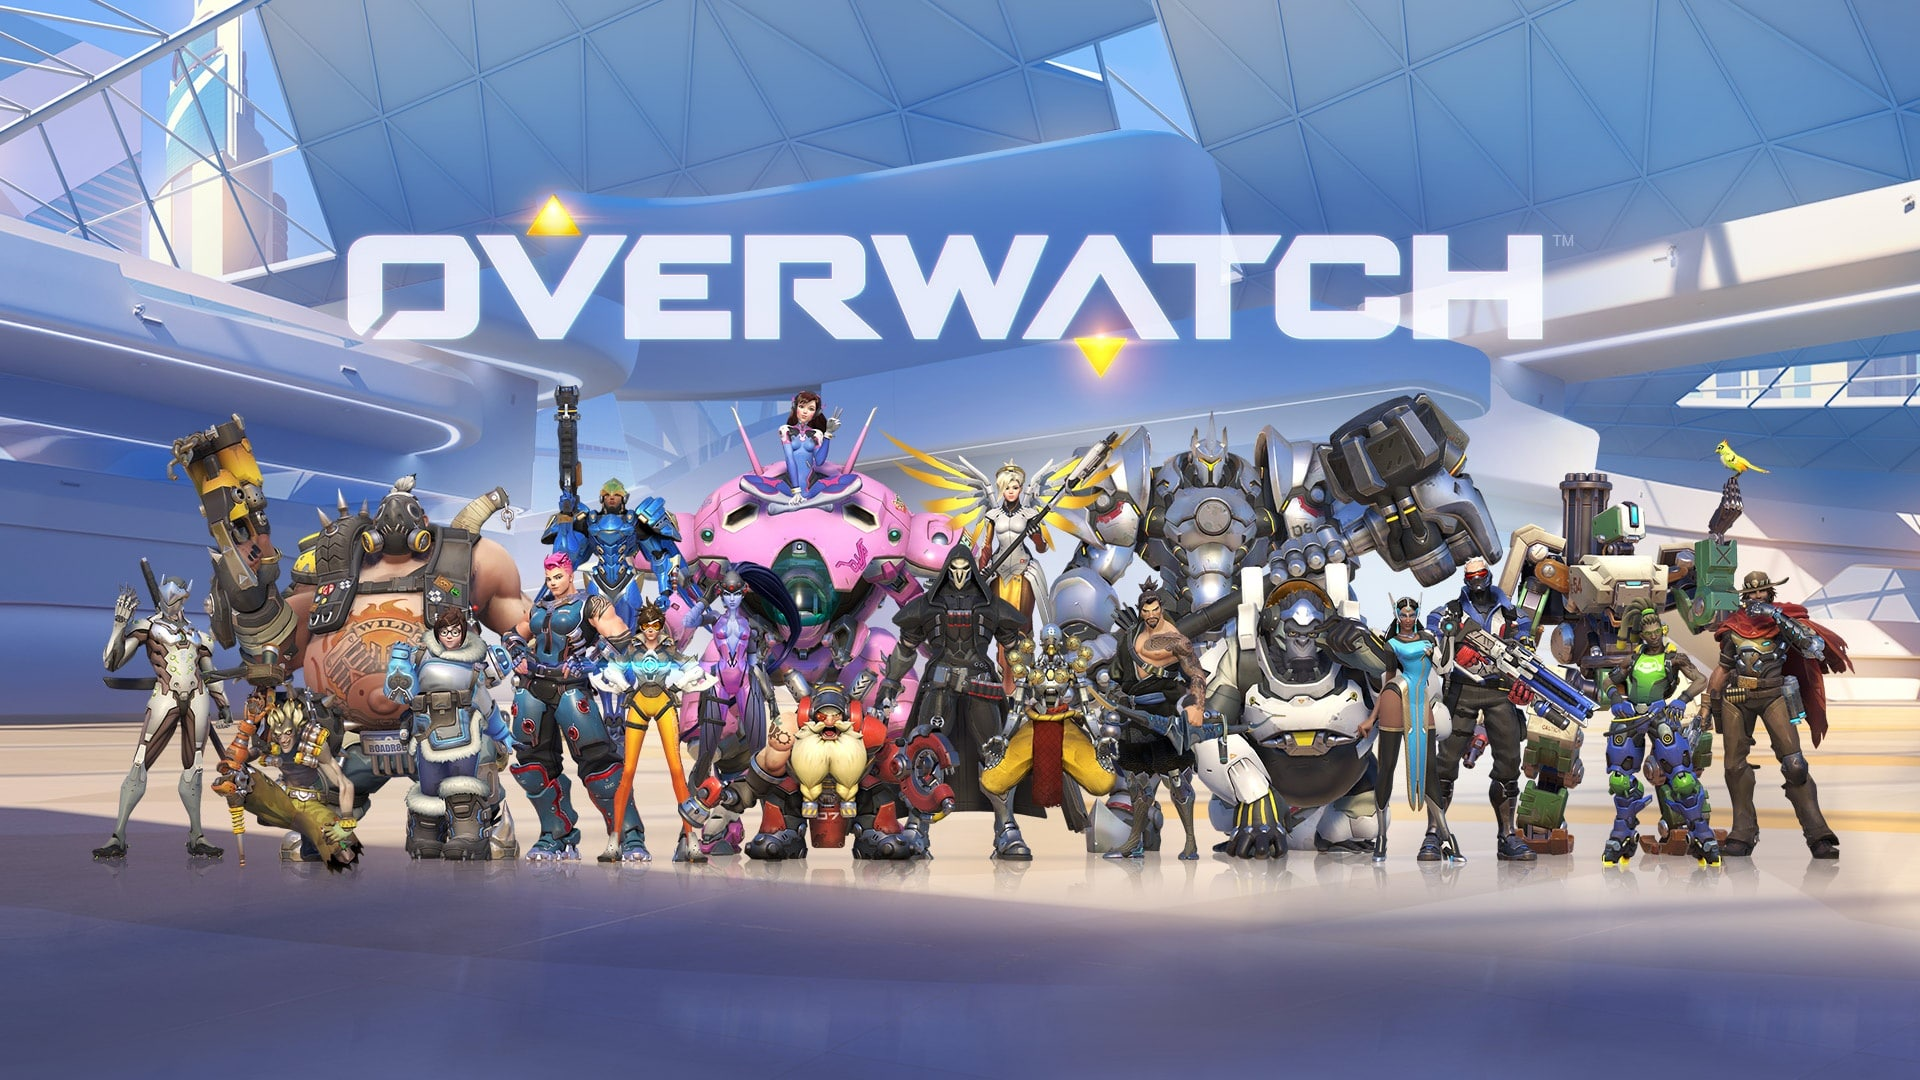 Blizzard: Overwatch should be feasible